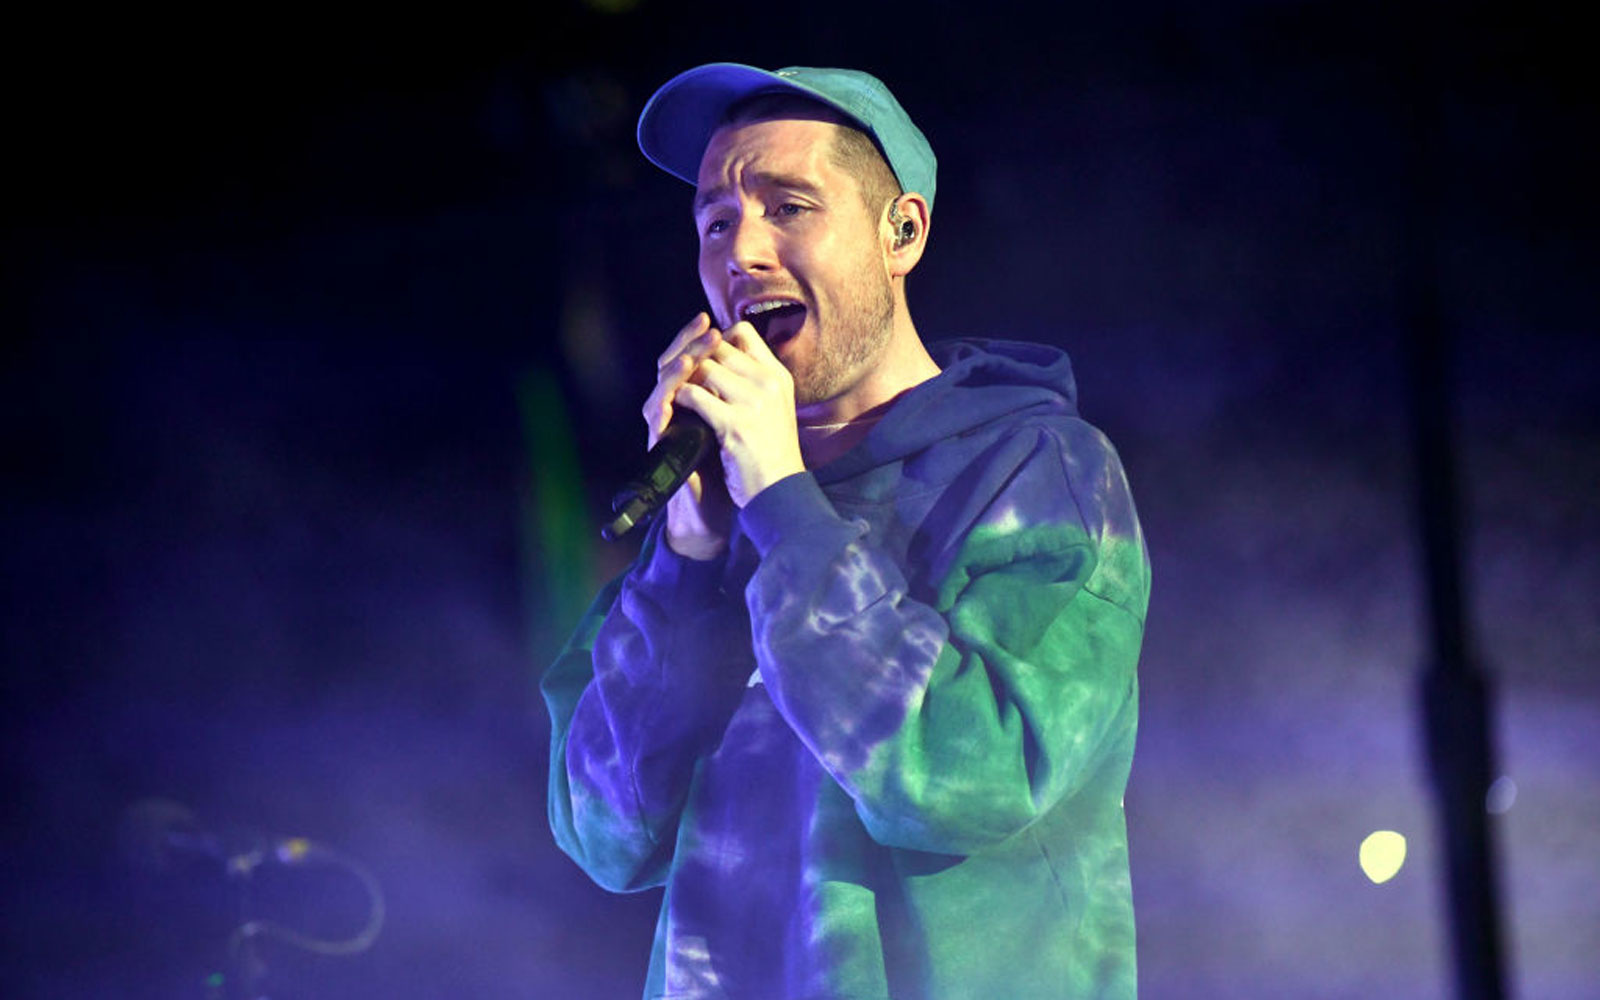 Singer Dan Smith of the band Bastille performs onstage